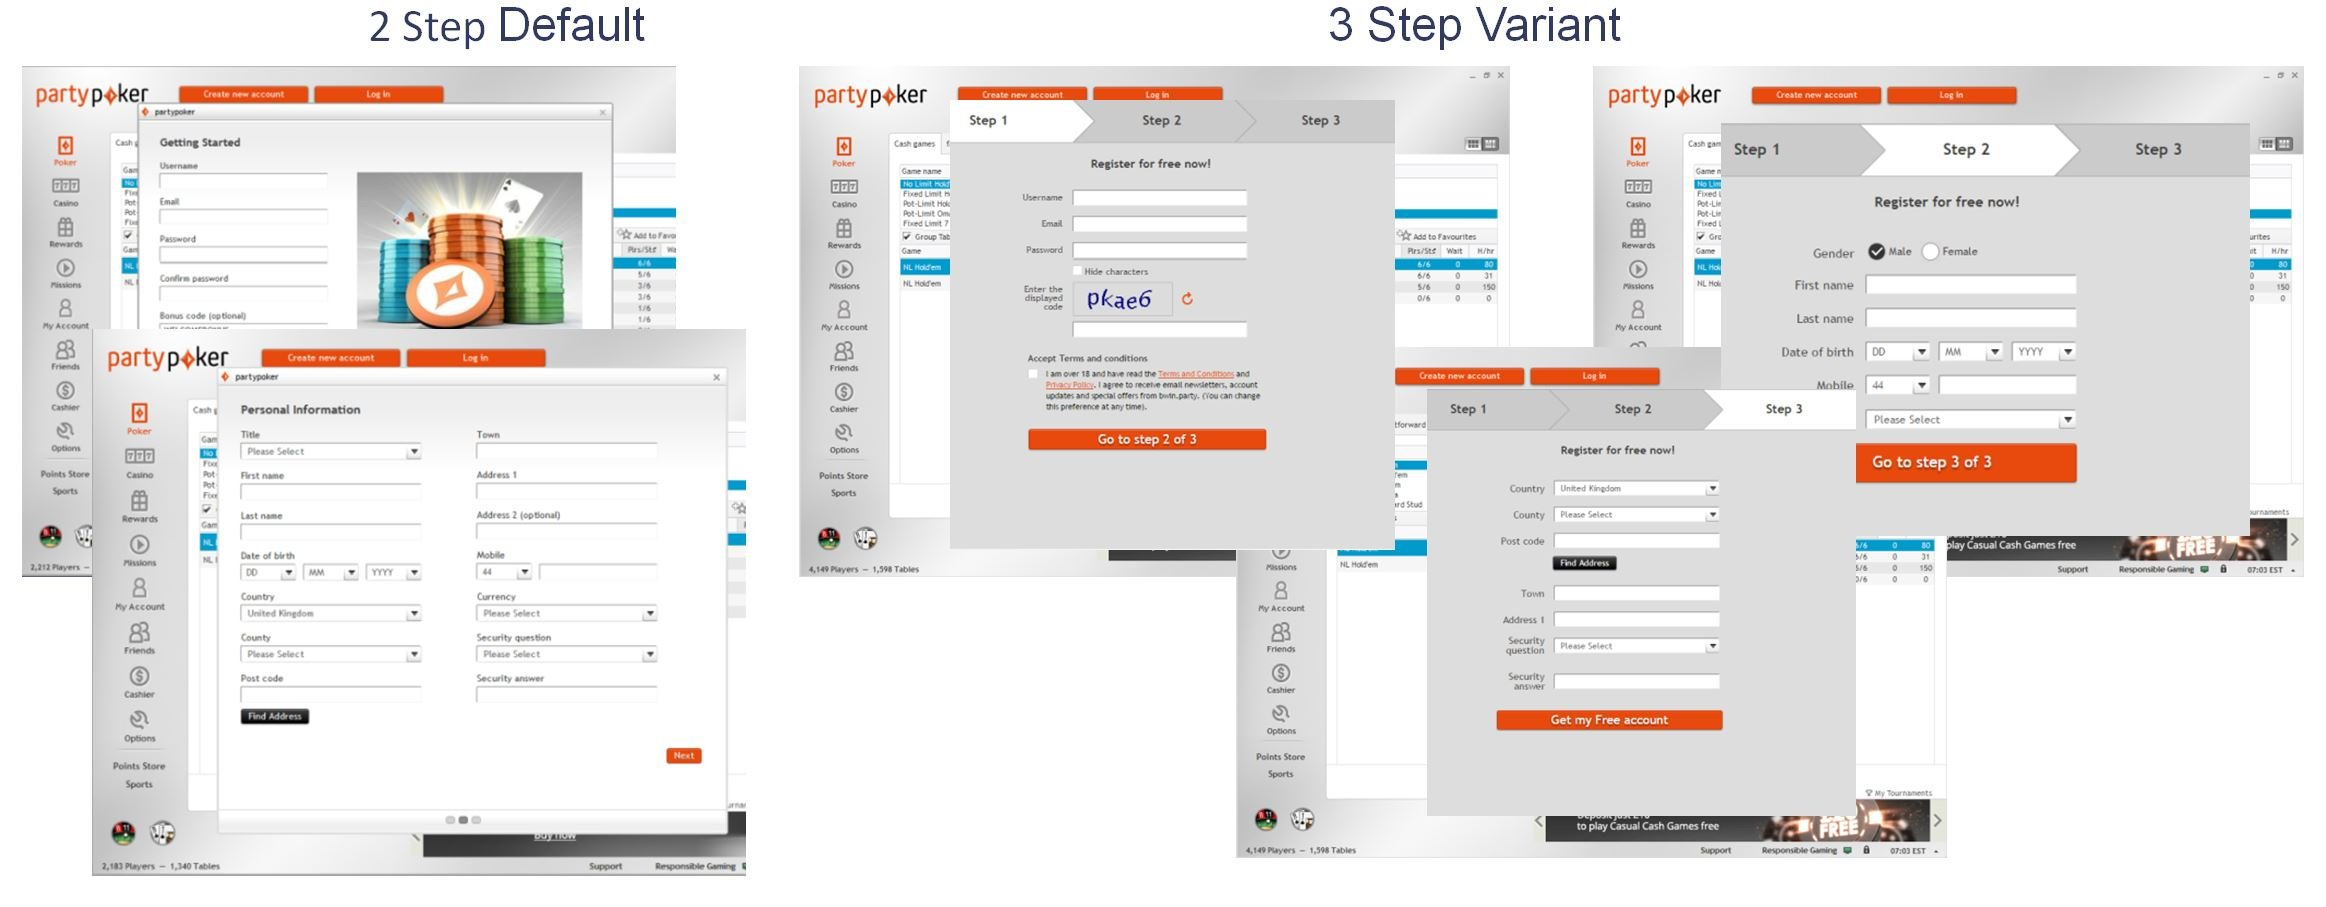 Split path tests allow you to change the order of number of steps in a multi-page journey